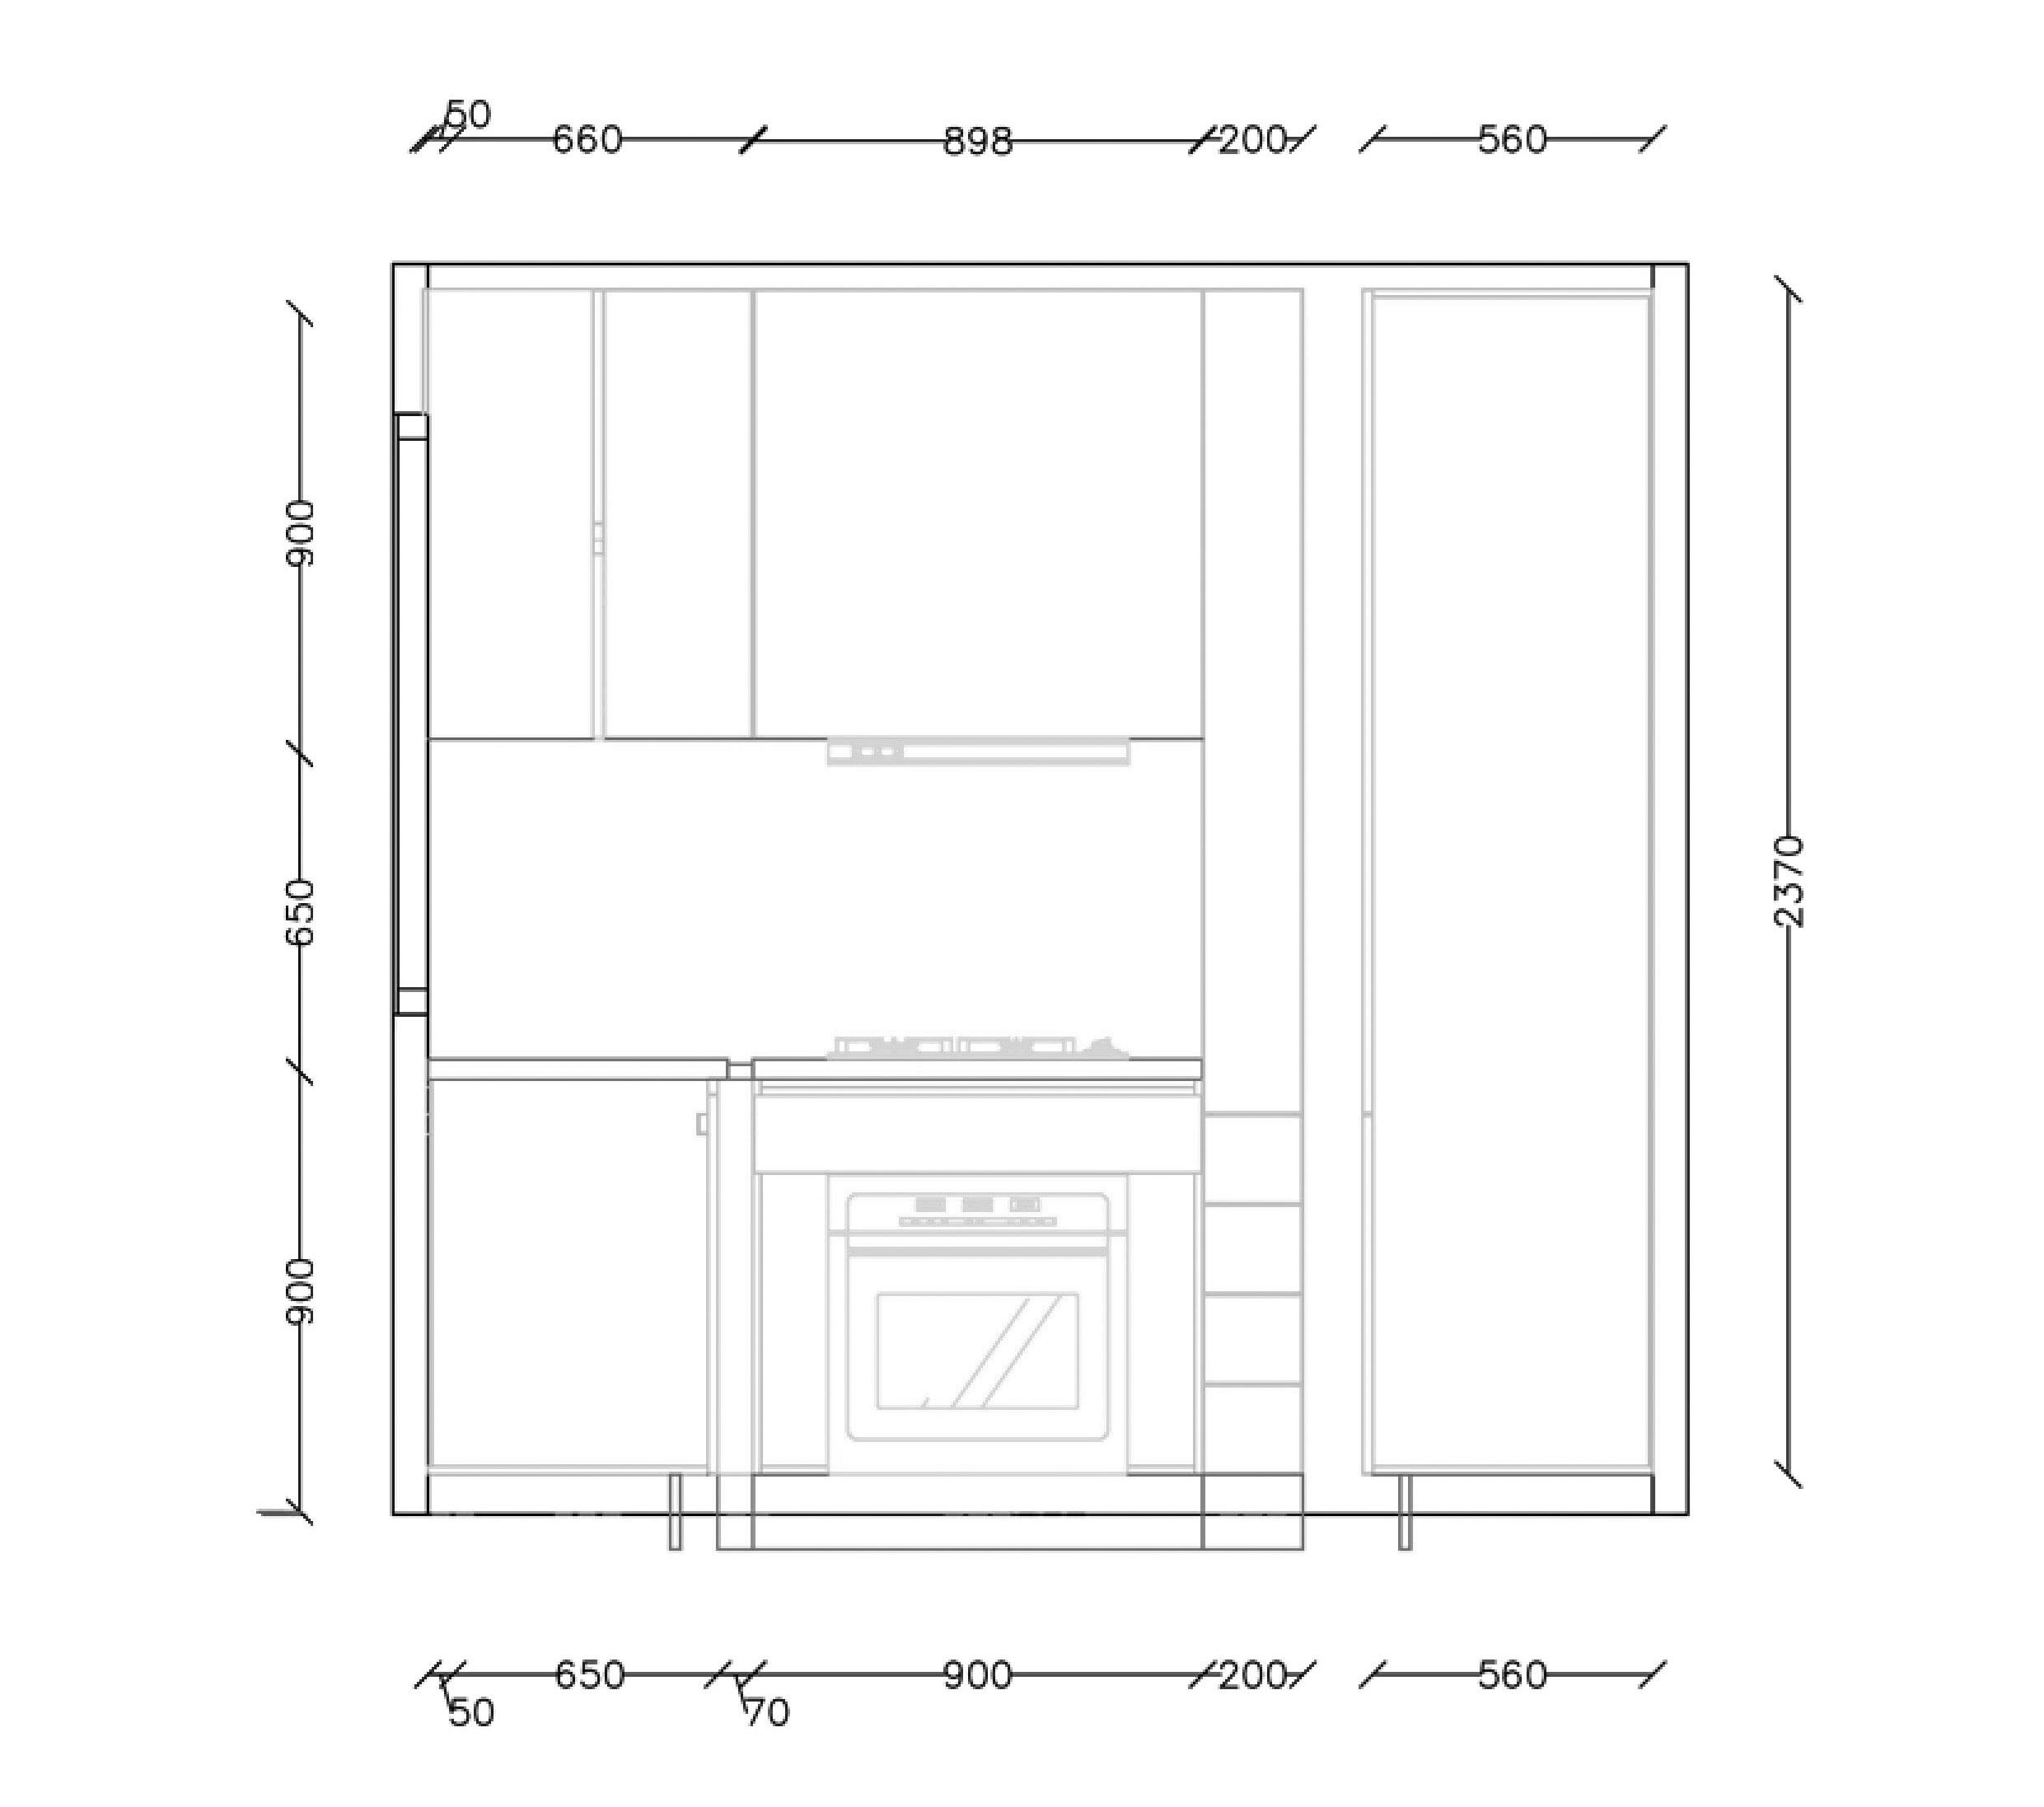 Drawing of kitchen elevation plan